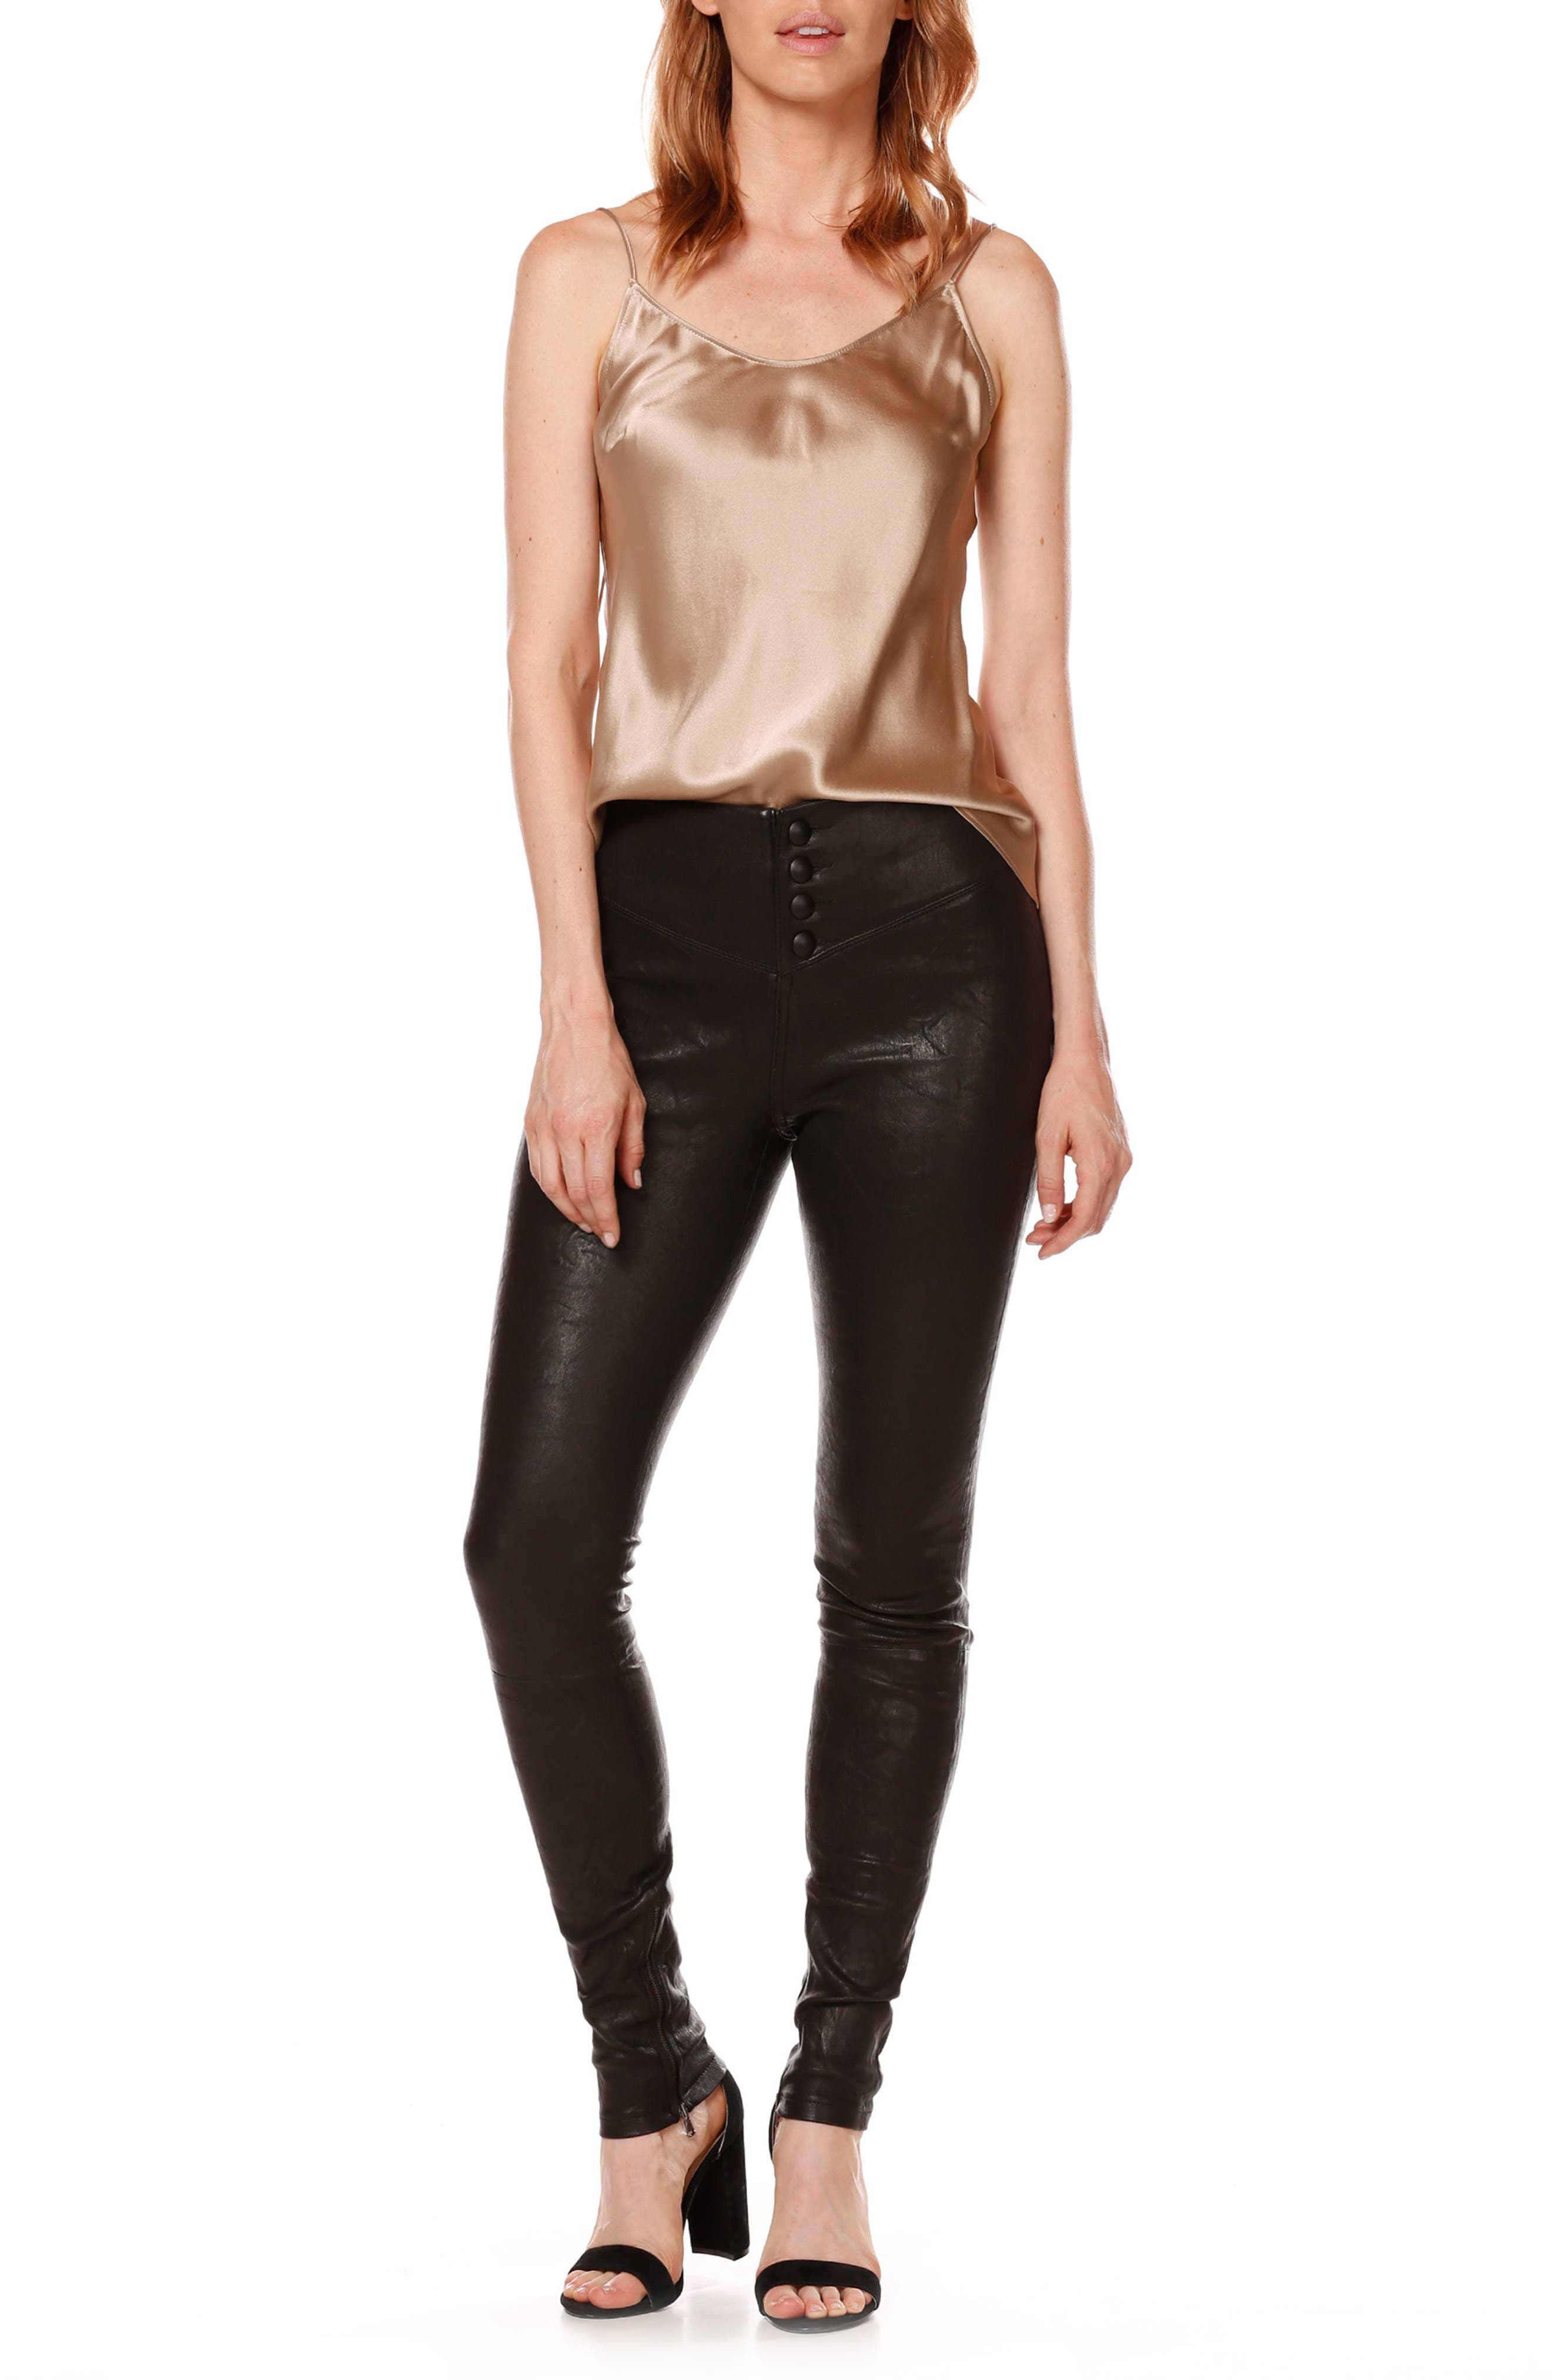 Rosie HW x PAIGE Ellery Ankle Zip Leather Pants,                             Alternate thumbnail 2, color,                             Black Leather